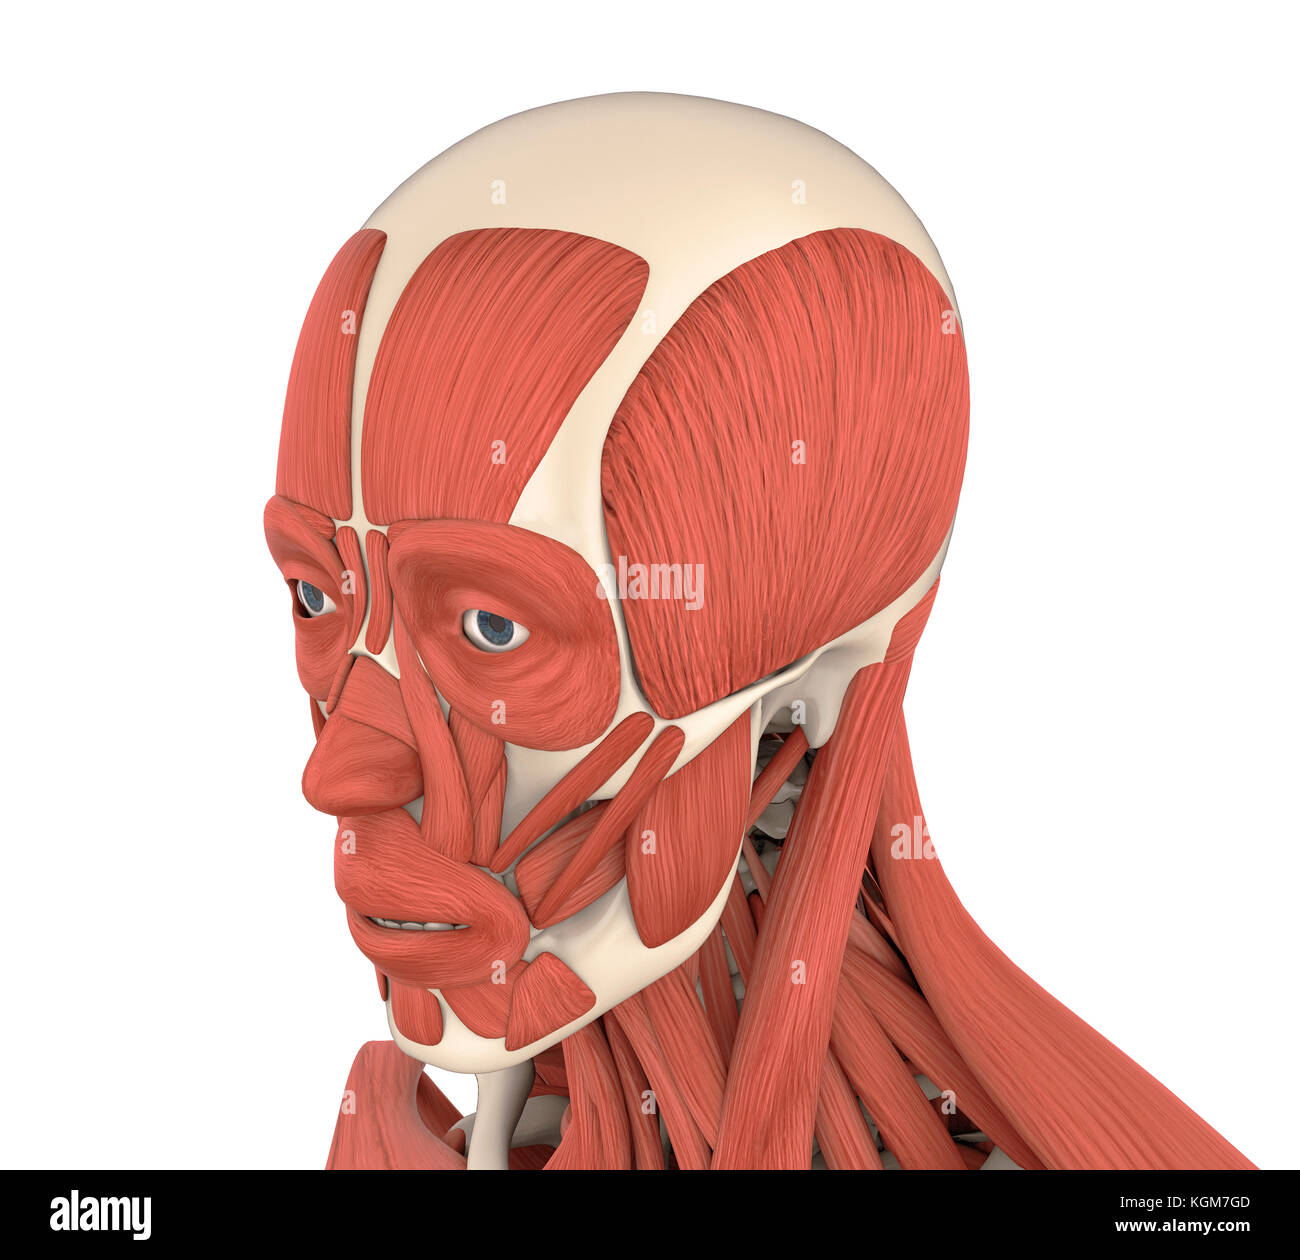 Human Facial Muscles Anatomy Stock Photo: 165172797 - Alamy